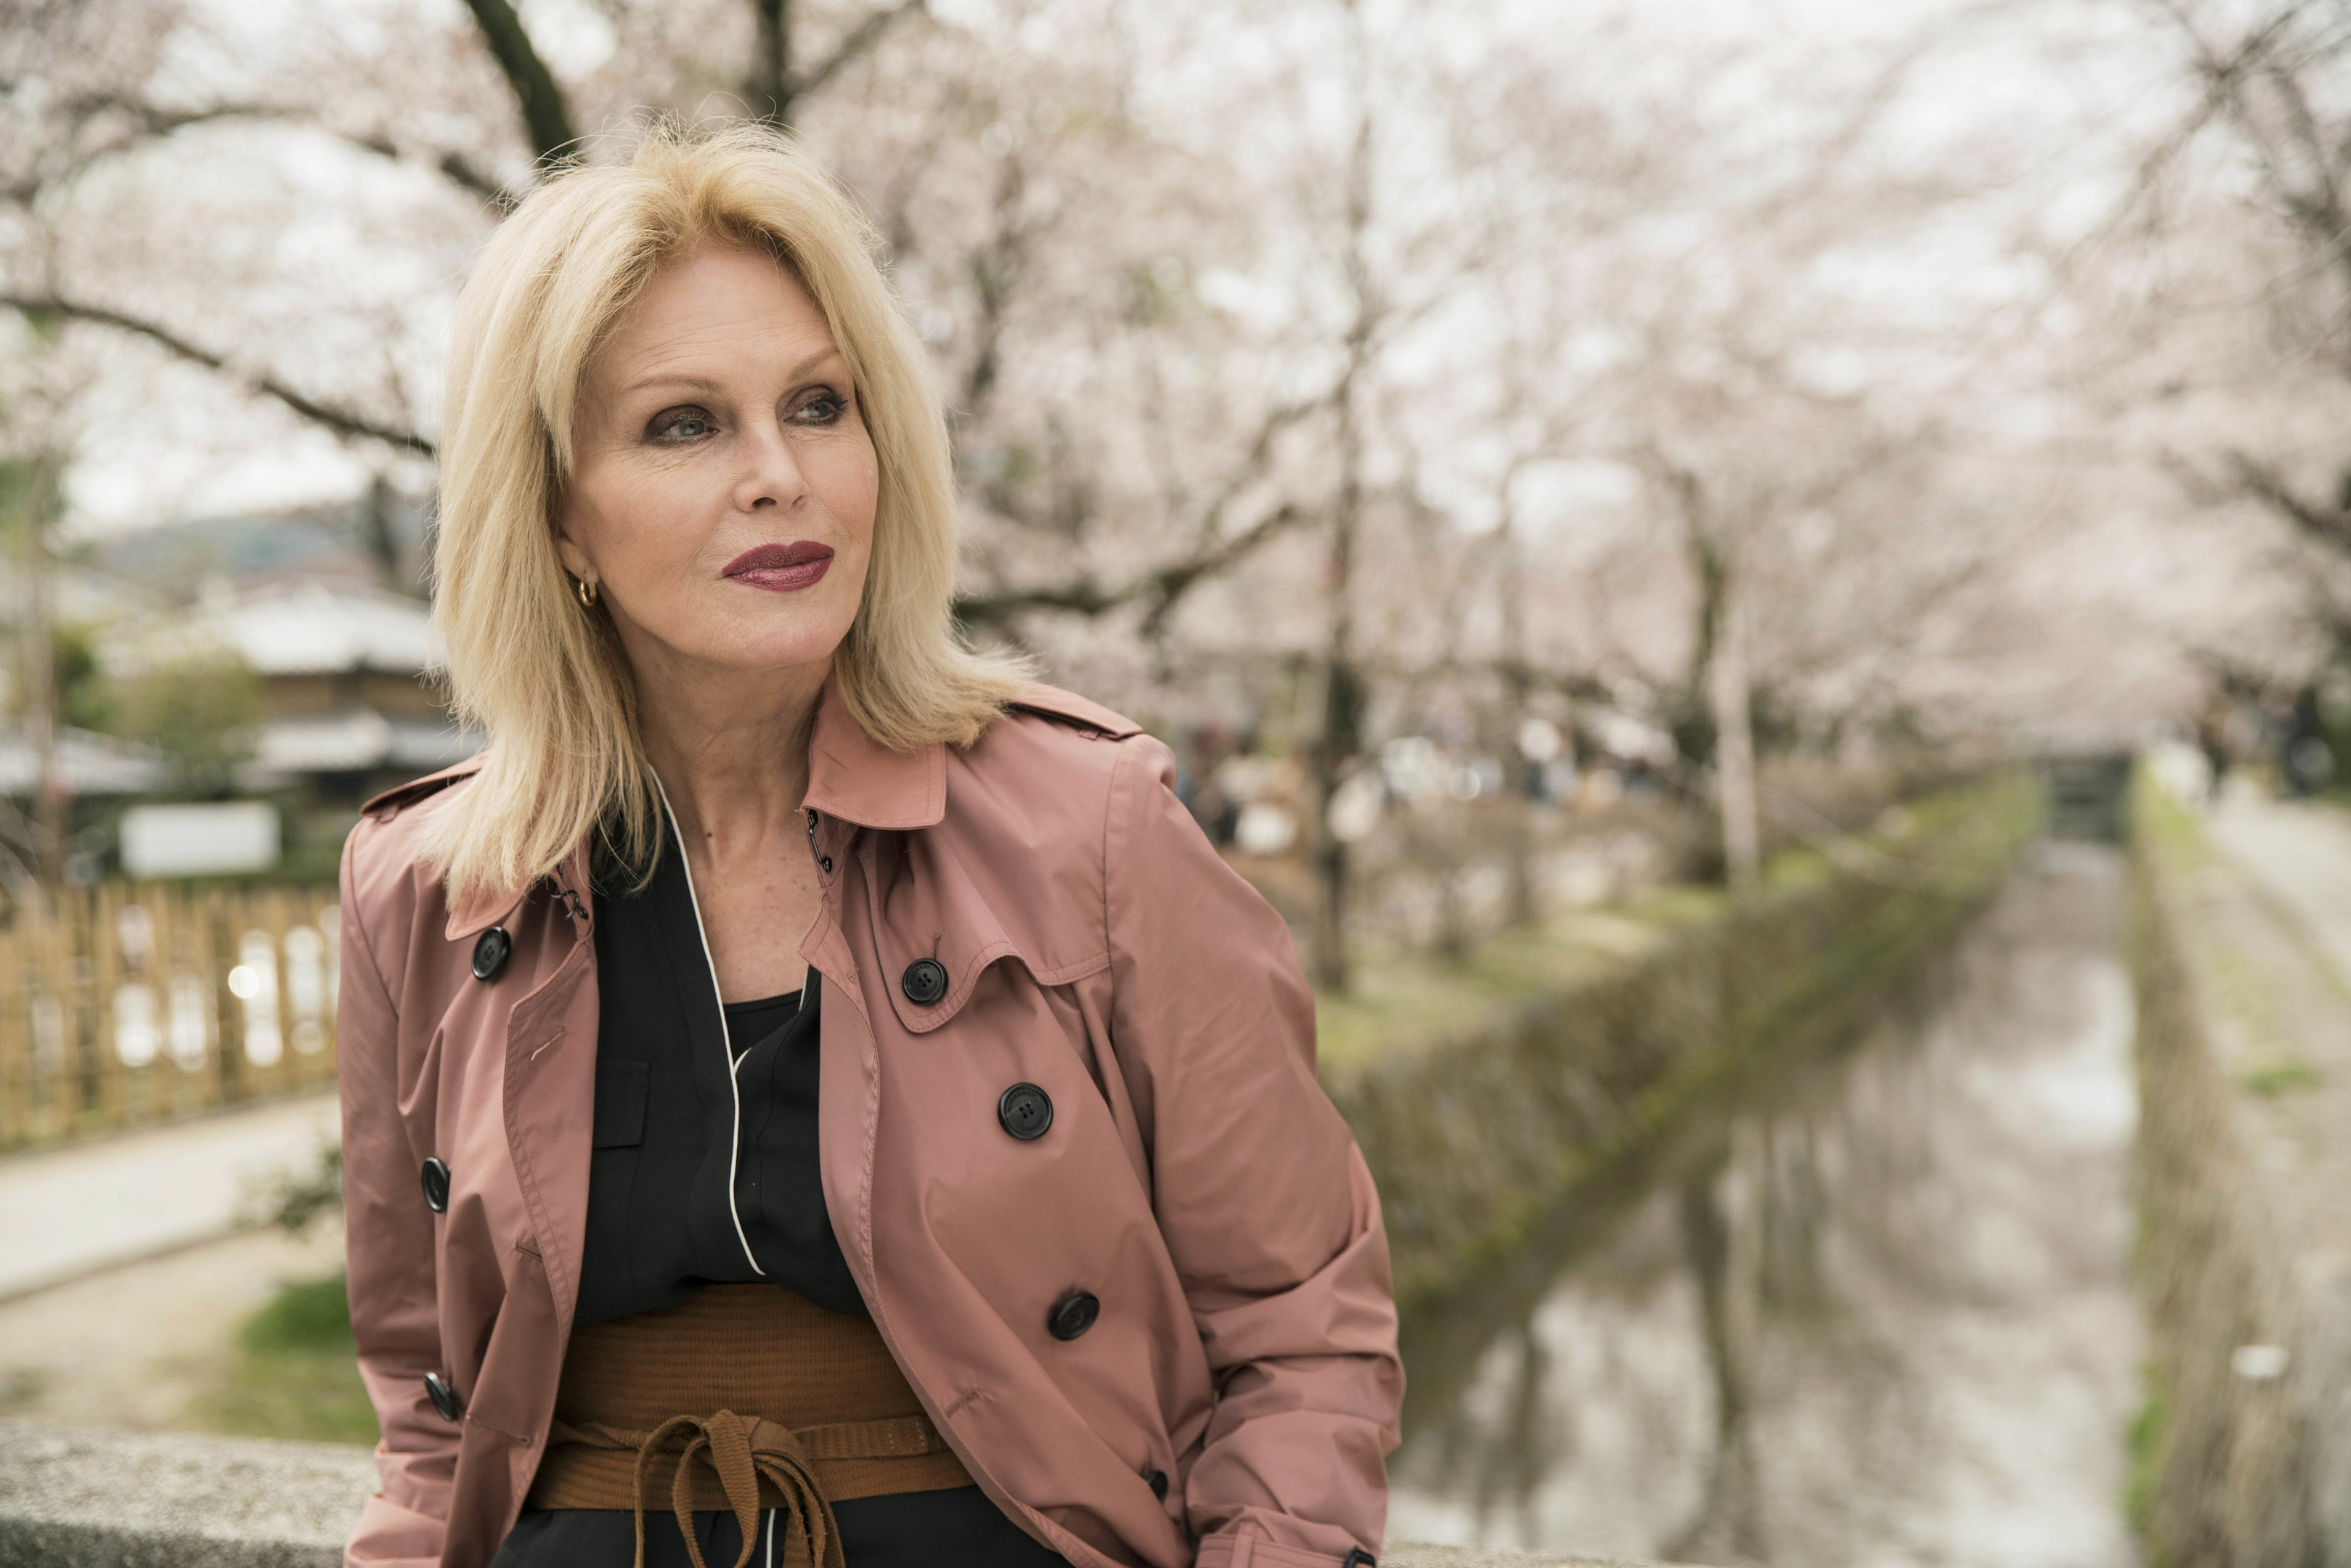 Joanna Lumley on her visit to Japan (Burning Bright Production / ITV)